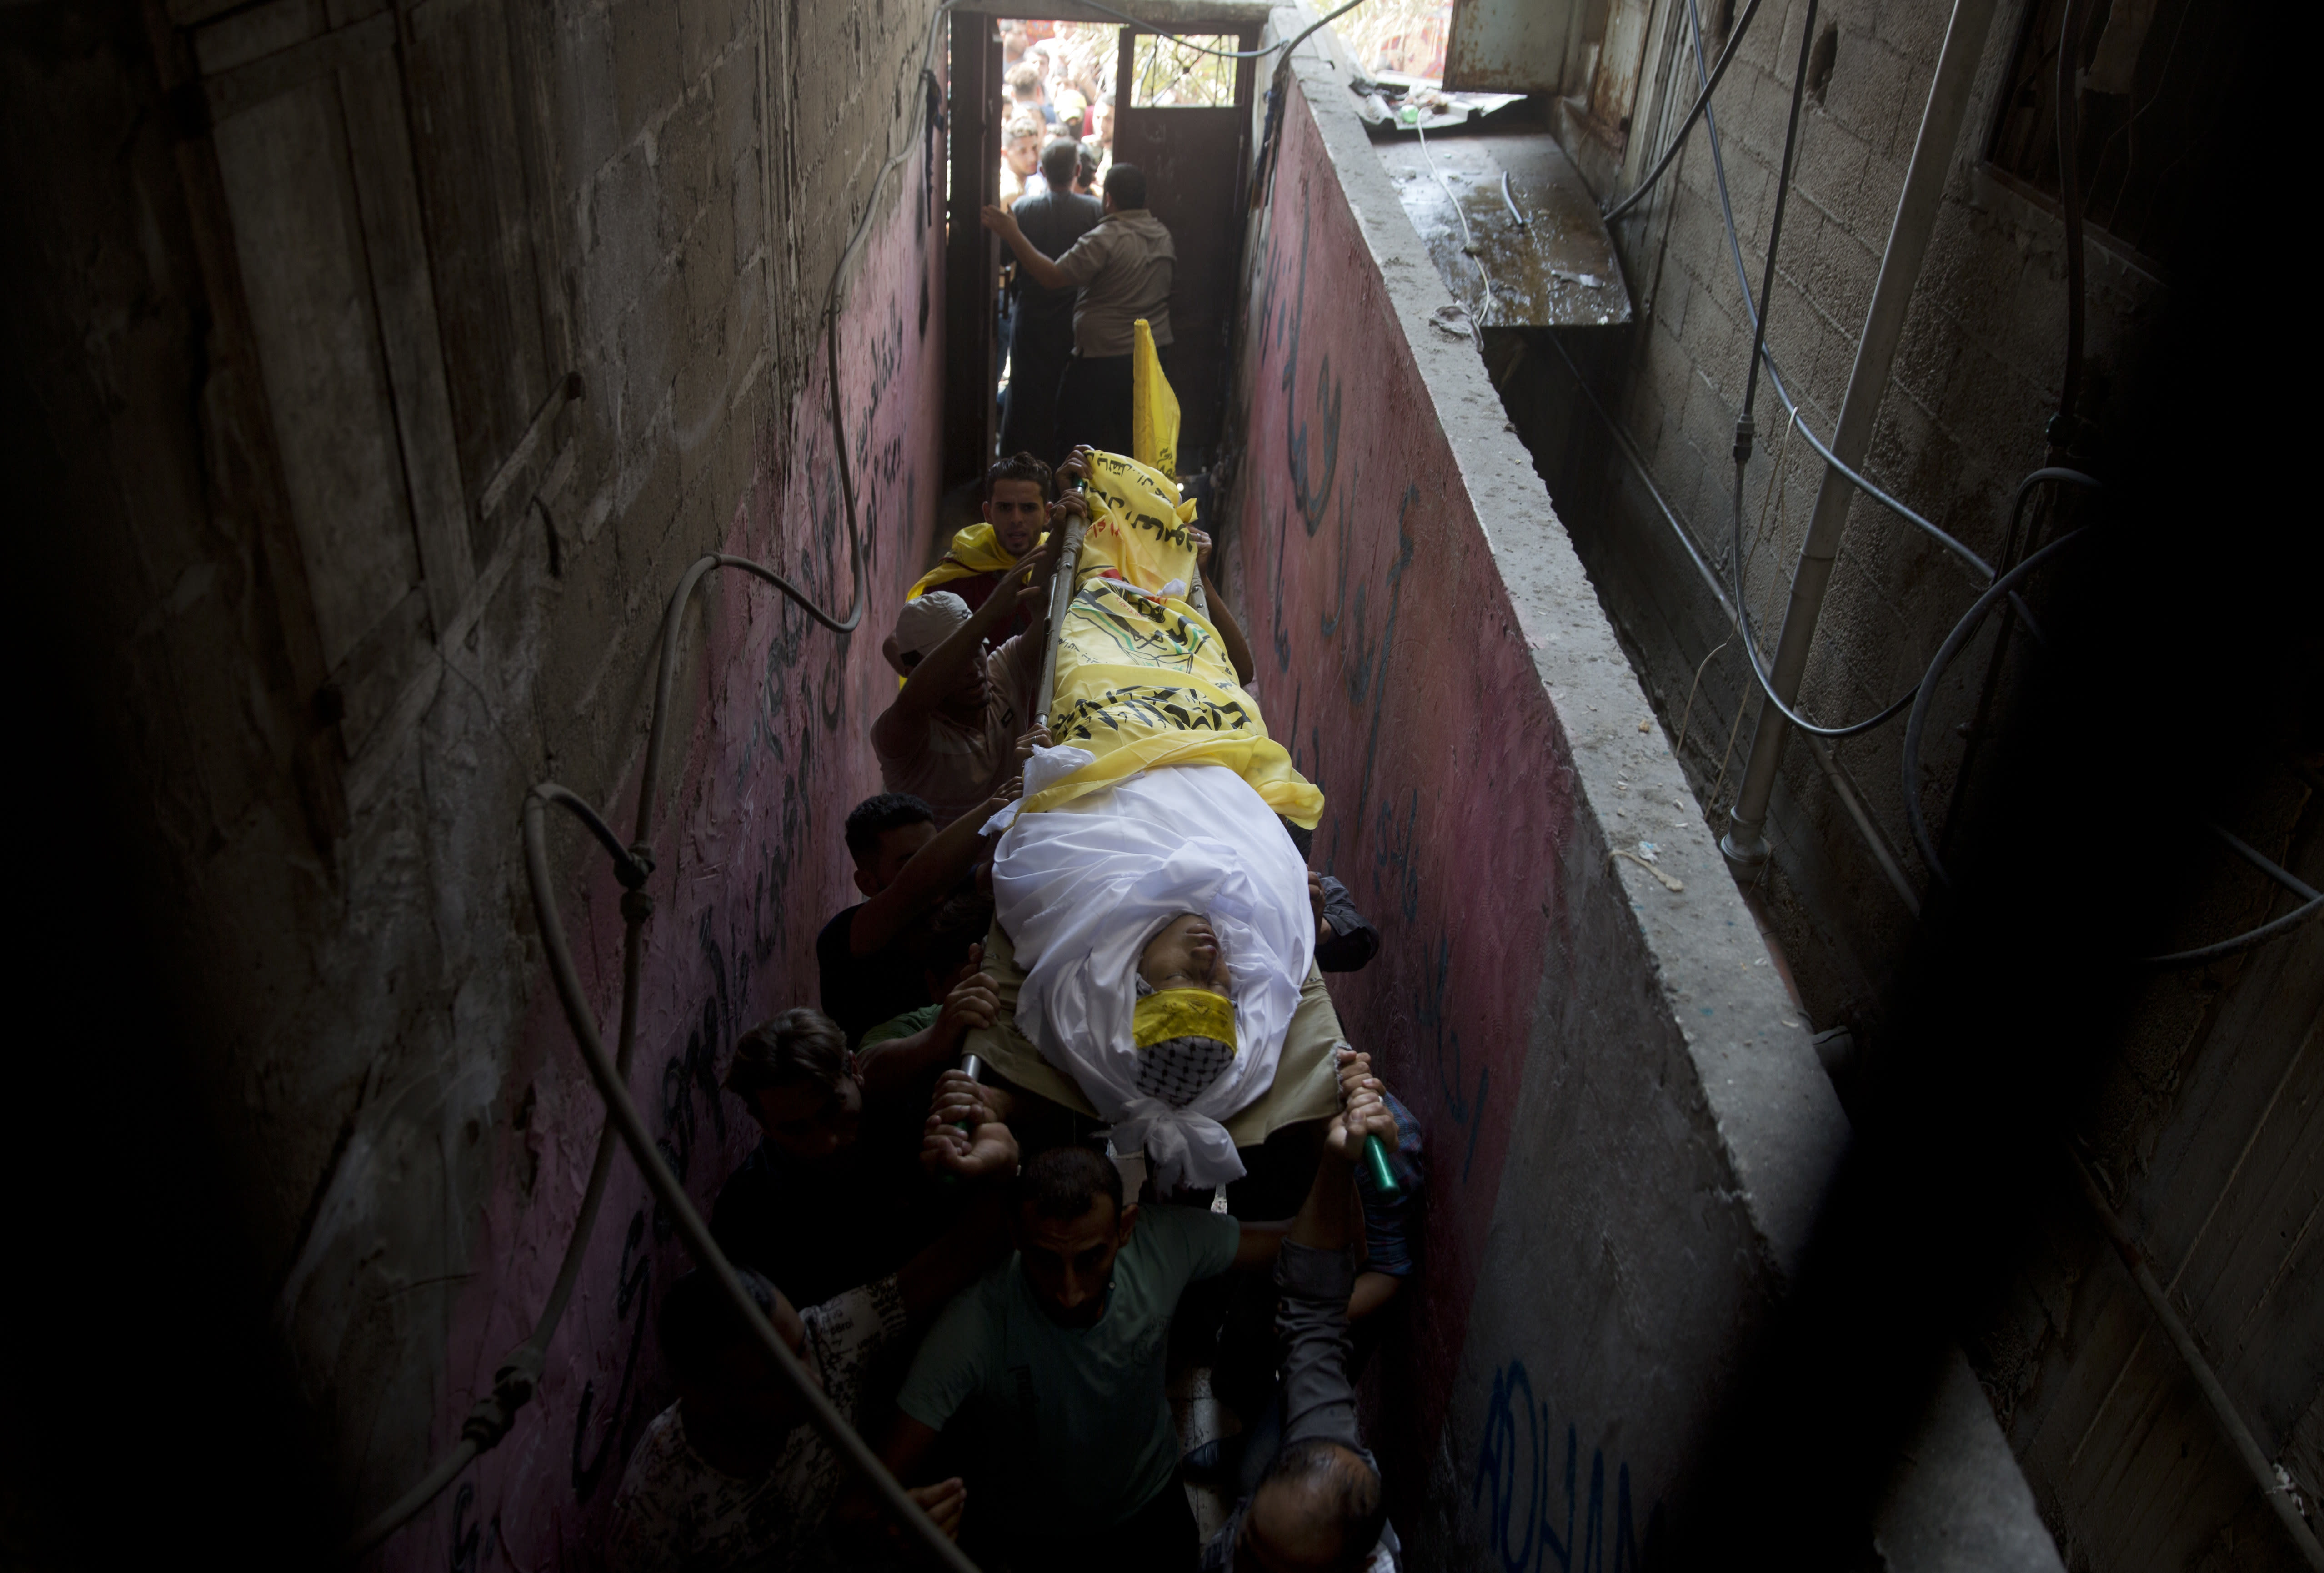 Palestinian carry the body of Mohammed Abbas, 21, who was killed by Israeli troops during Friday's protest at the Gaza Strip's border with Israel, into the family home during his funeral in Gaza City, Saturday, Oct. 13, 2018. (AP Photo/Khalil Hamra)